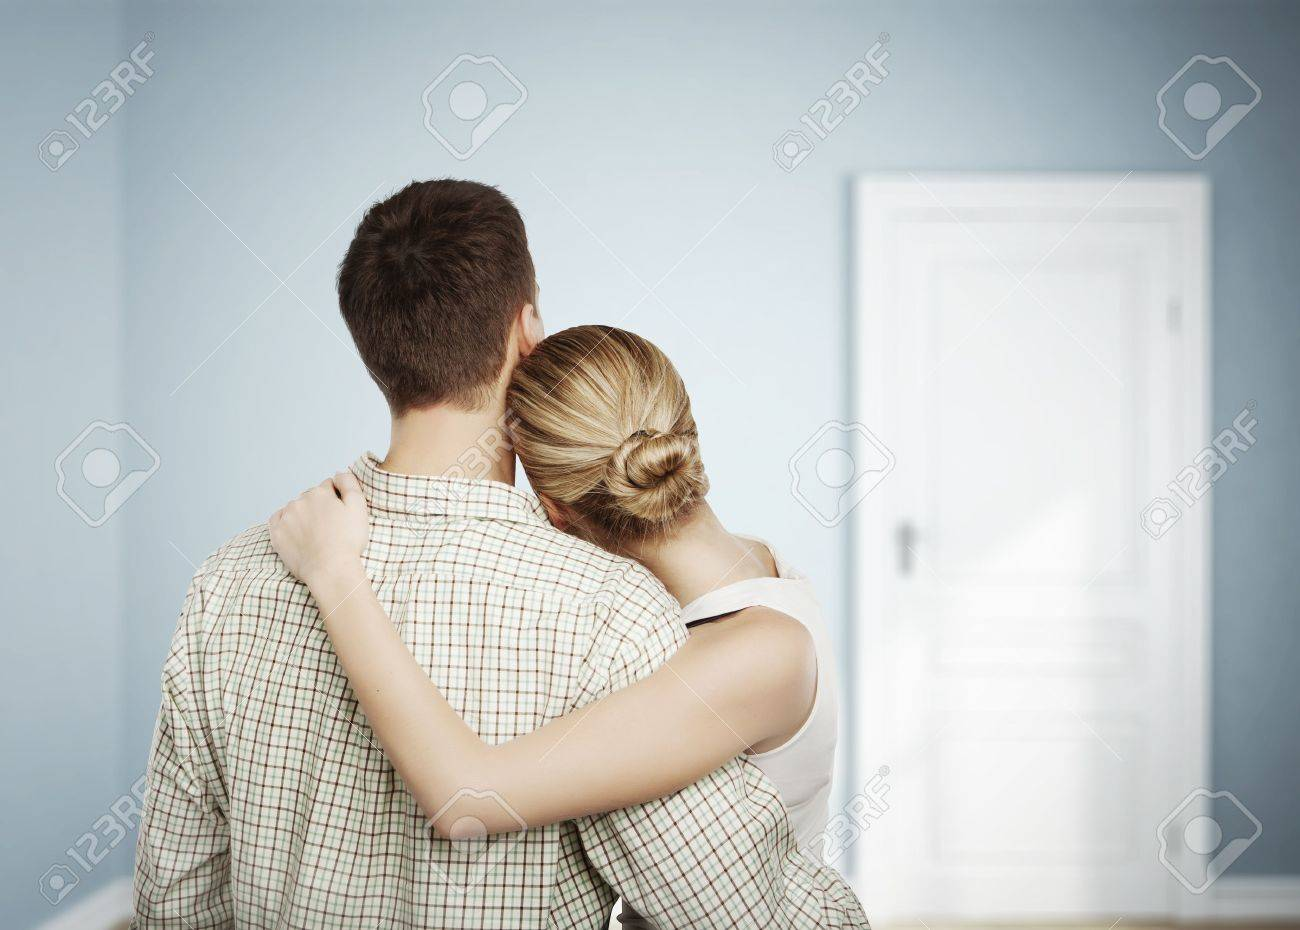 man and woman in blue room Stock Photo - 17281357